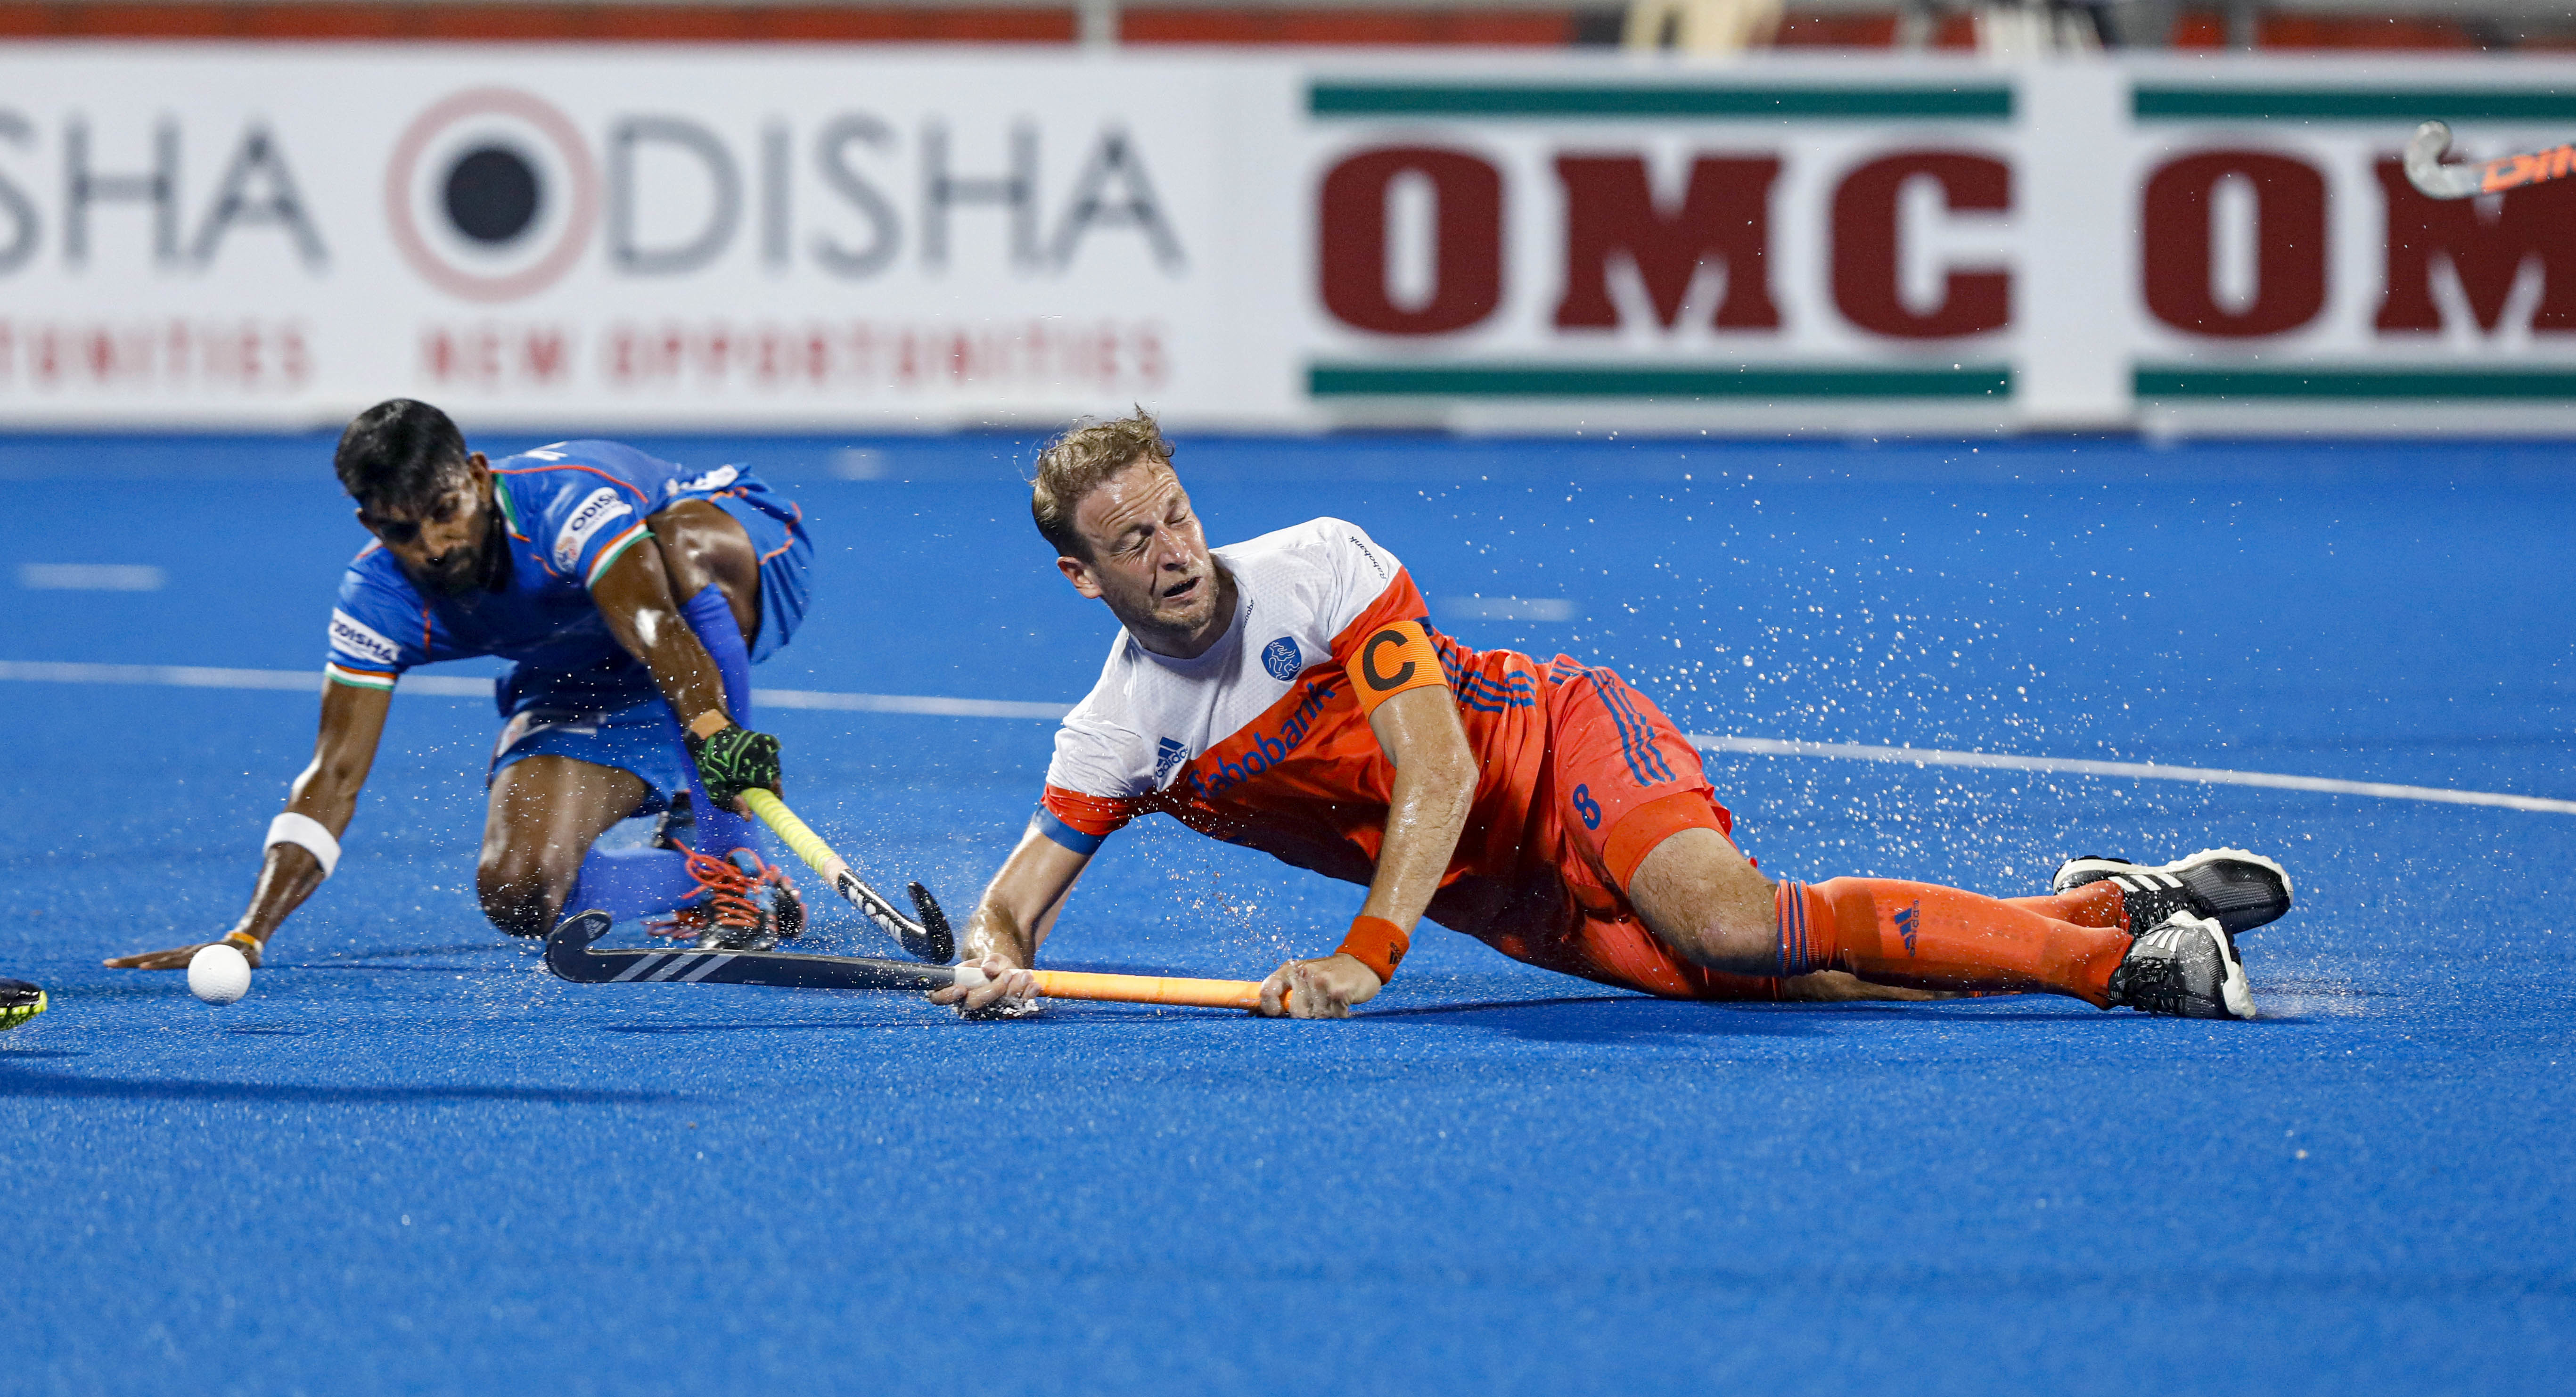 FIH Hockey Pro League 2020 - India defeated Netherlands 5-2